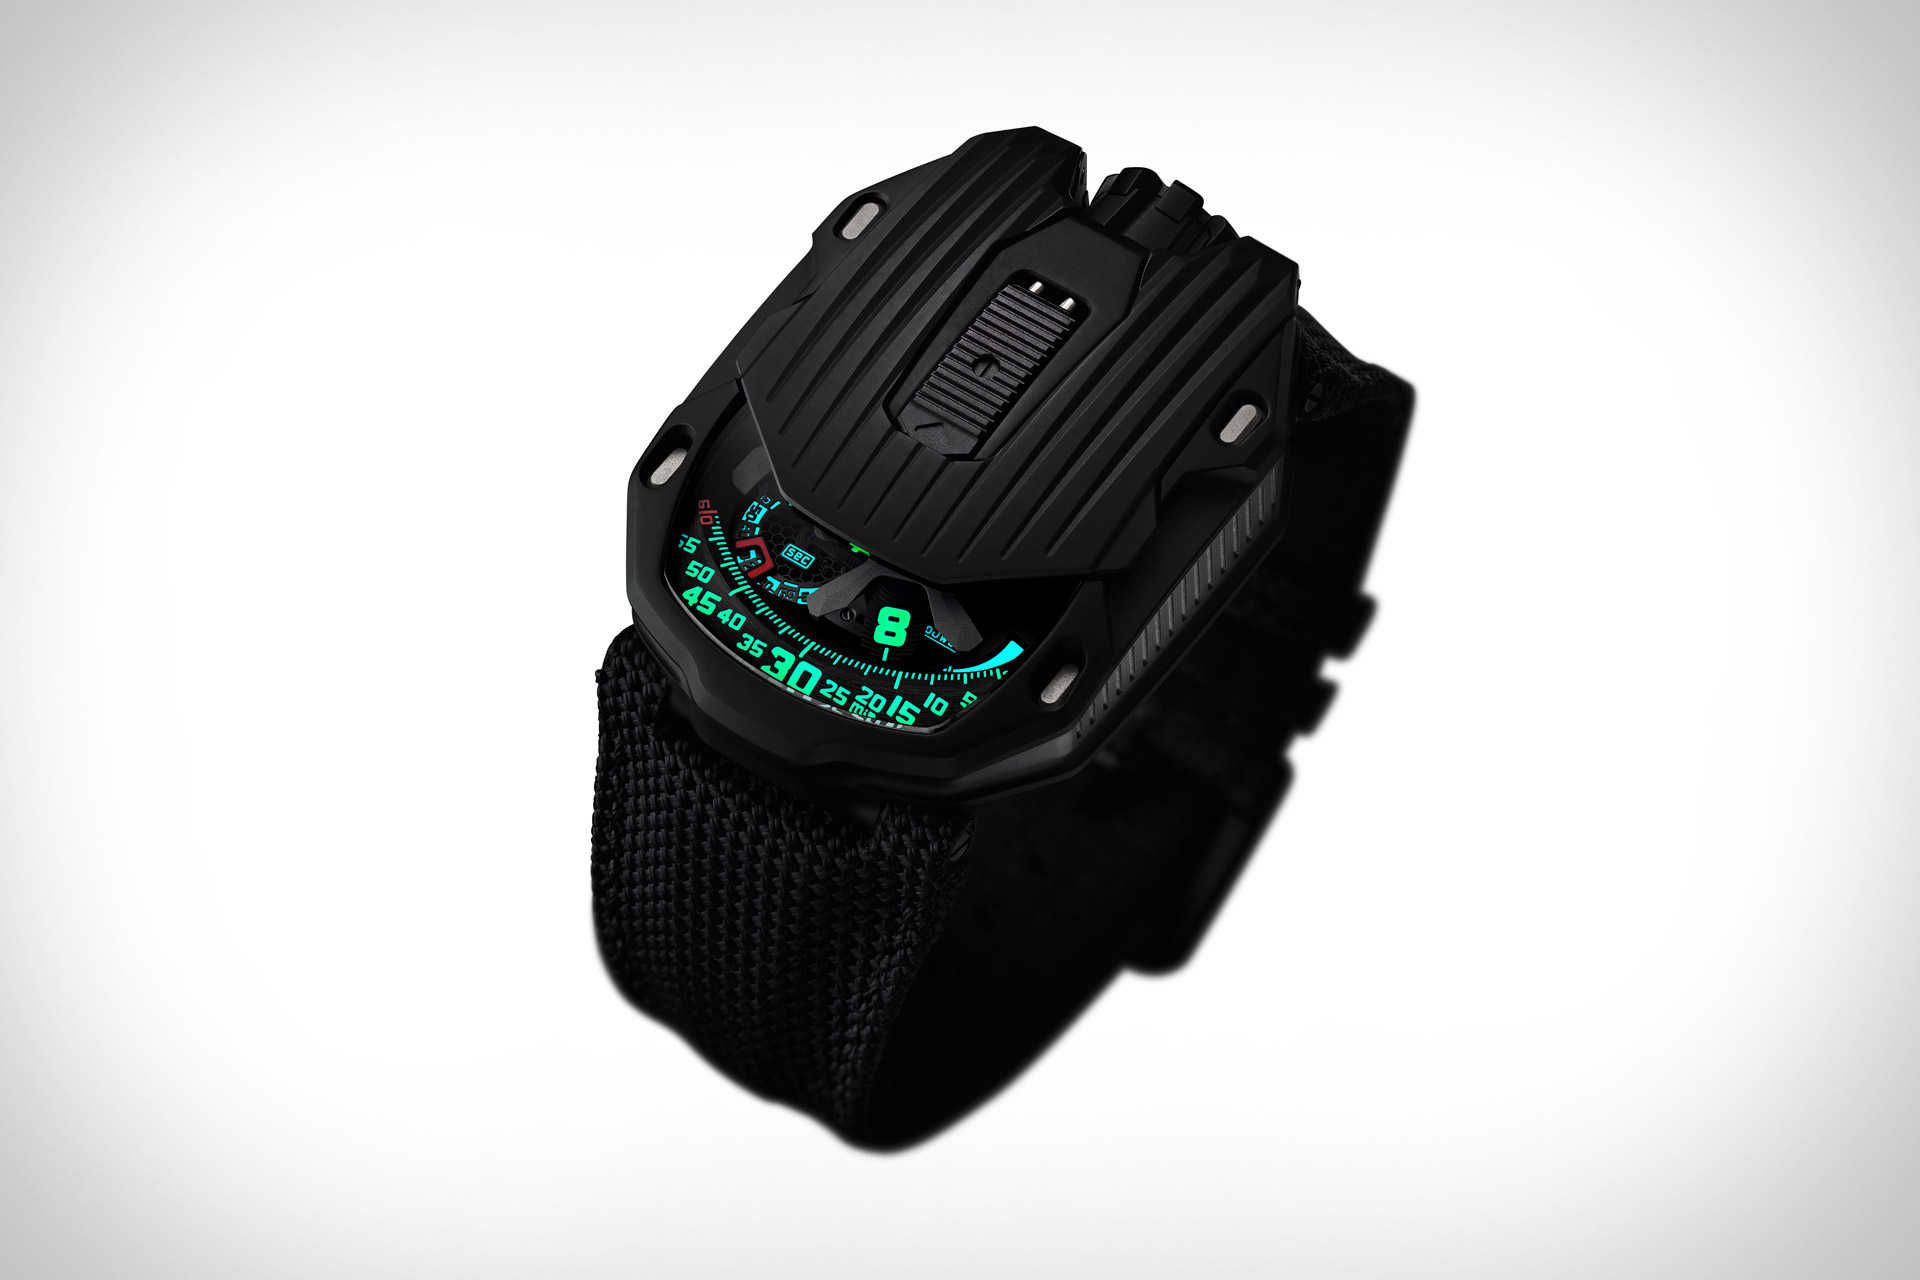 Urwerk Ur-105 Kryptonite Watch